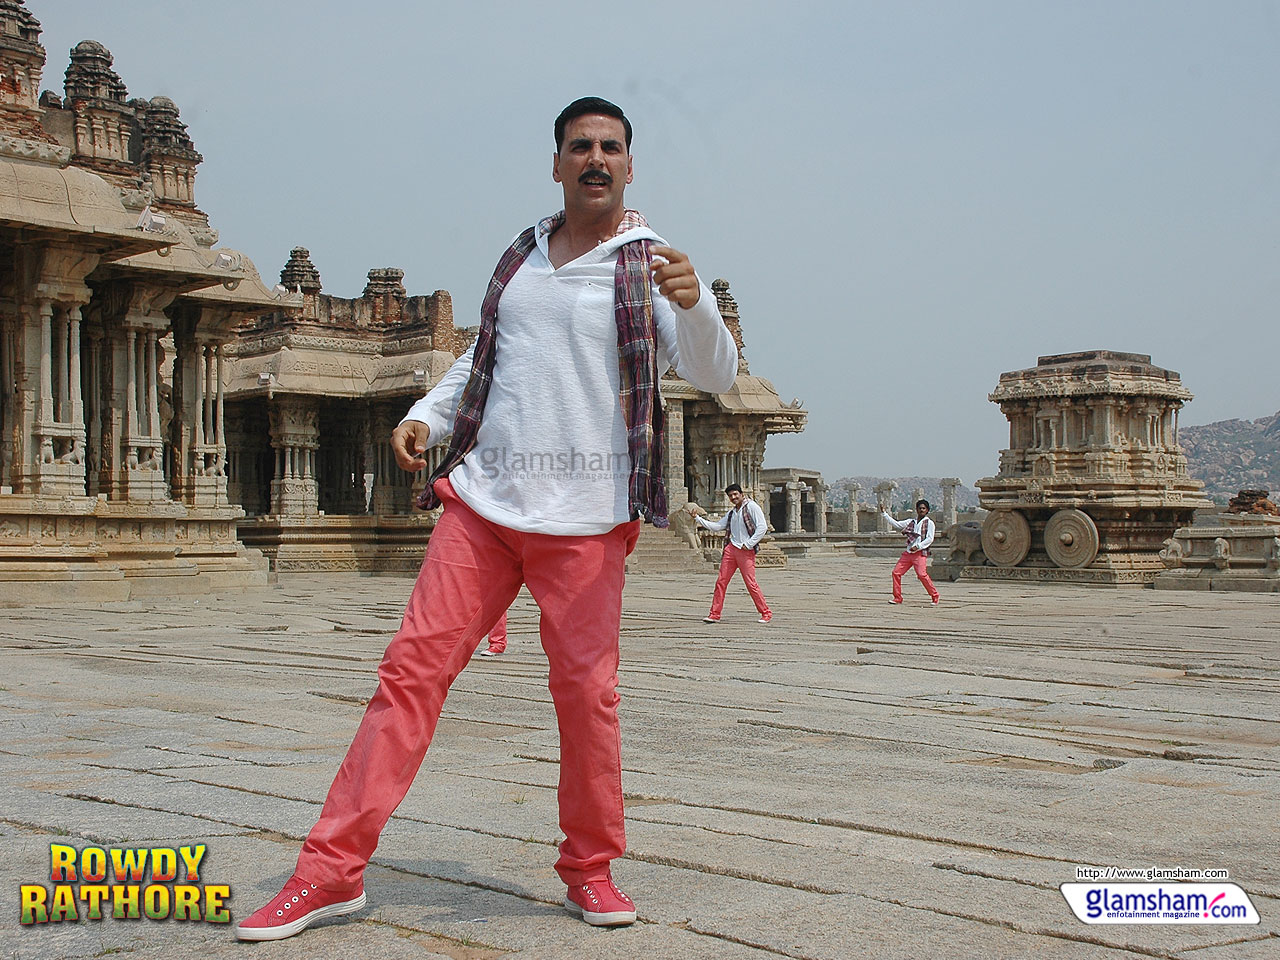 http://2.bp.blogspot.com/-mEsNe4-aC3A/UBQMU5AJd0I/AAAAAAAAHuY/sO6OCNdS89A/s1600/rowdy-rathore-wallpaper-04-12x9.jpg